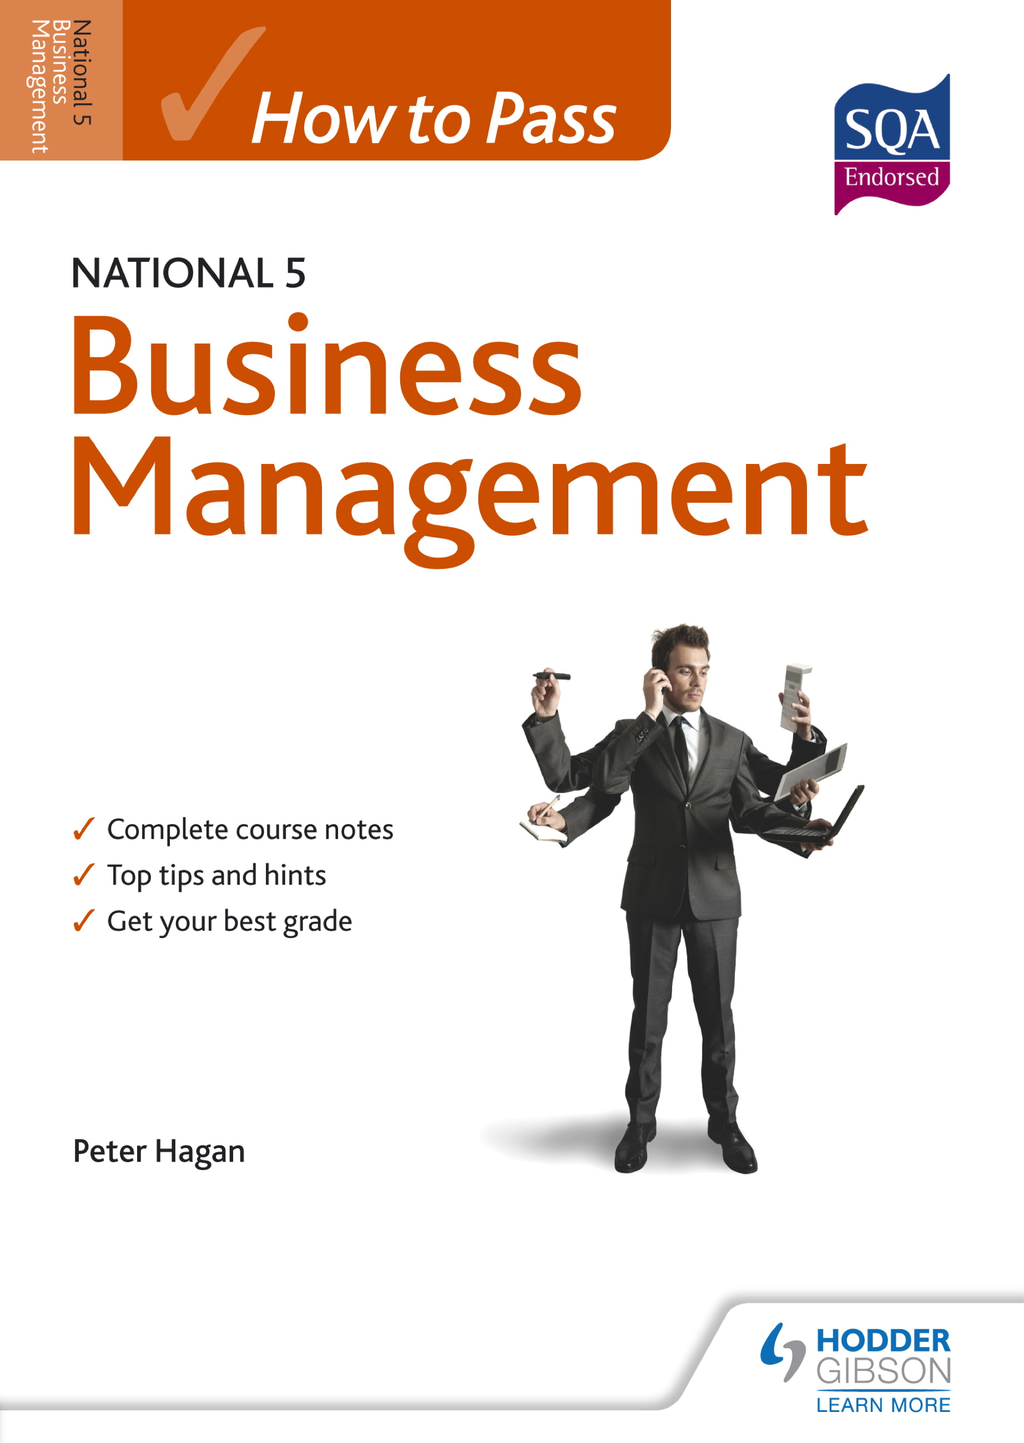 How to Pass National 5 Business Management eBook ePub